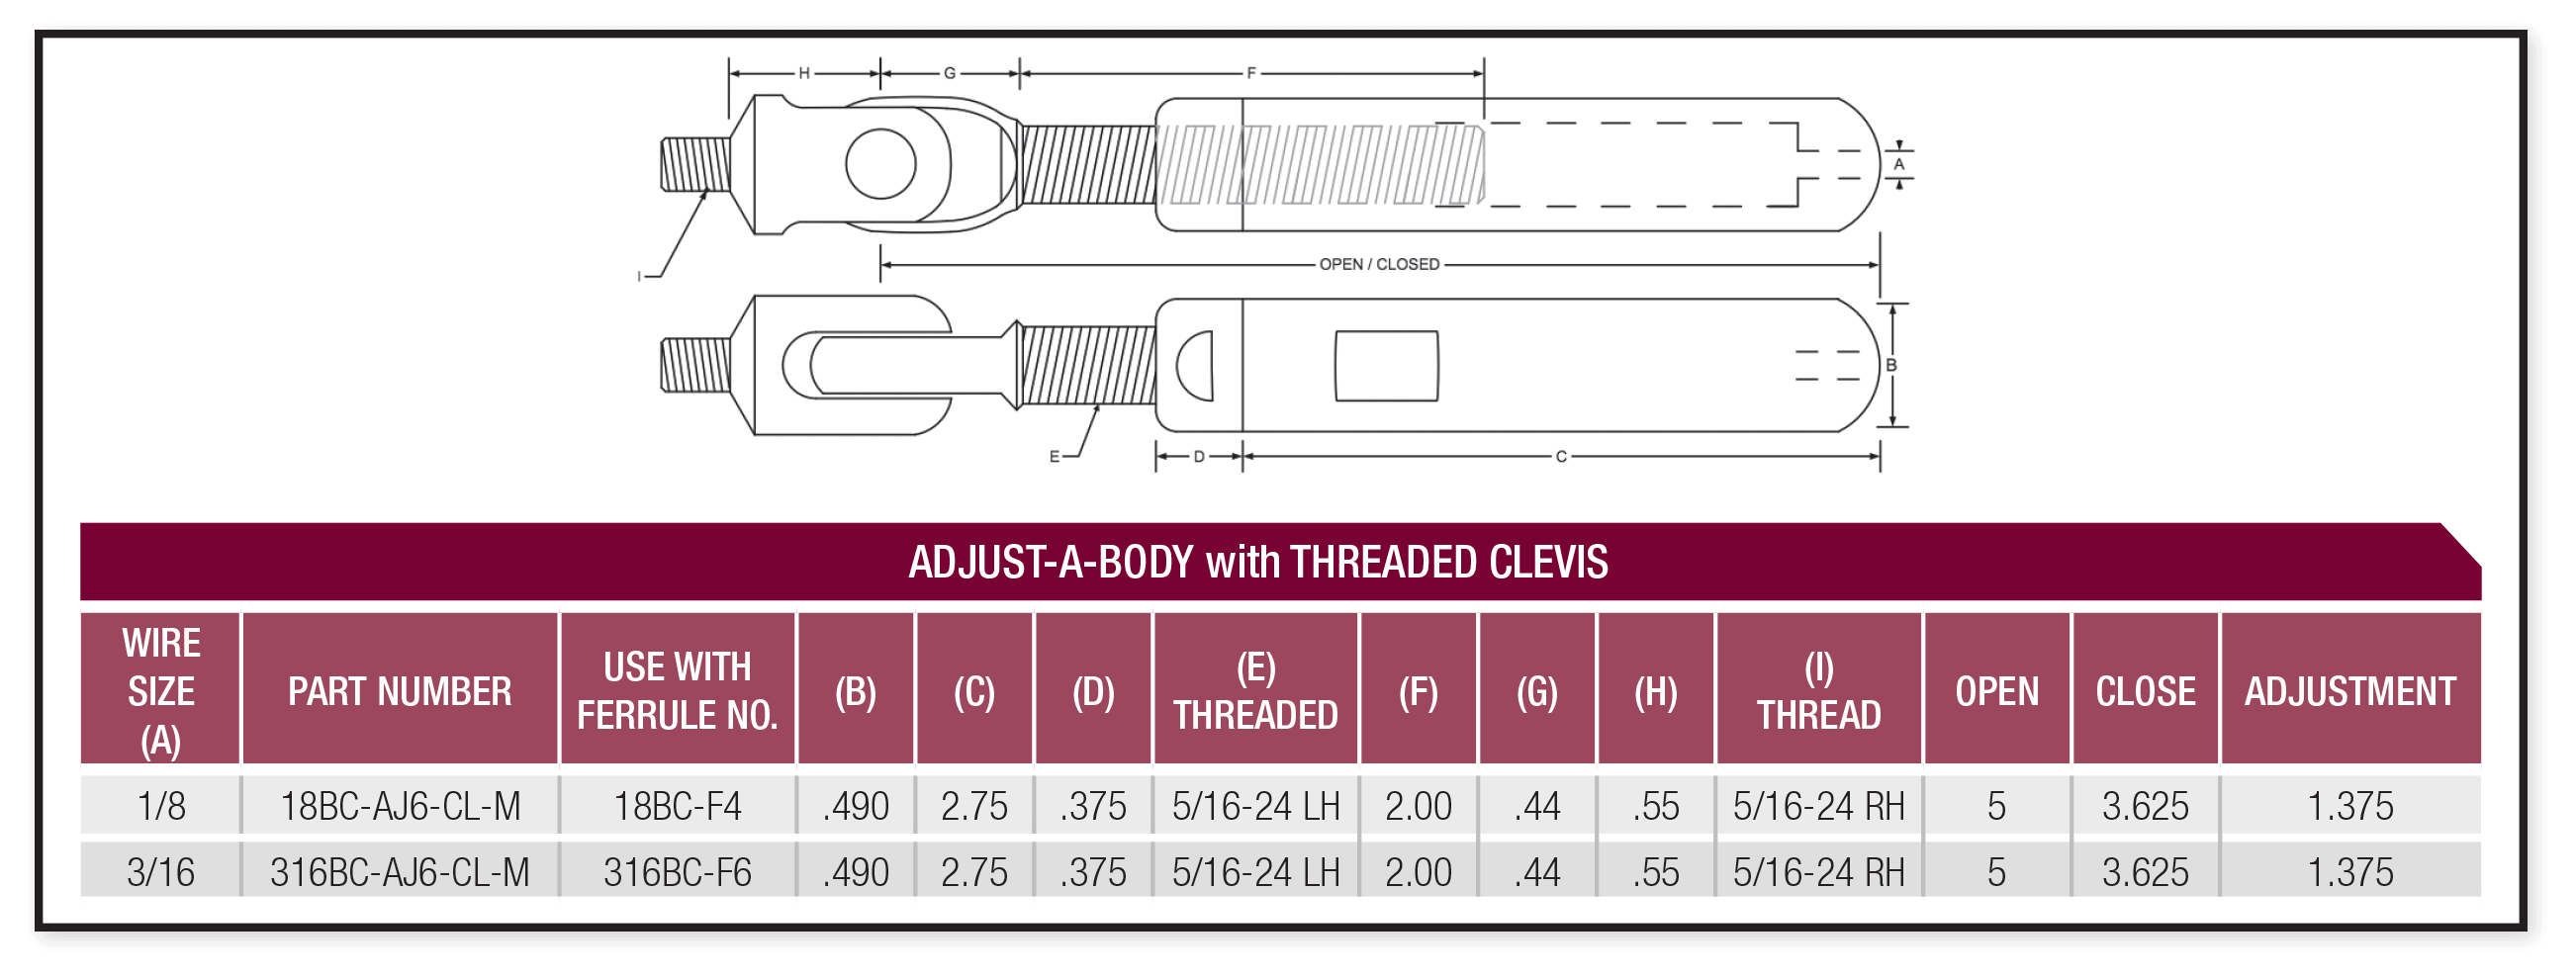 adjust-a-body with threaded clevis